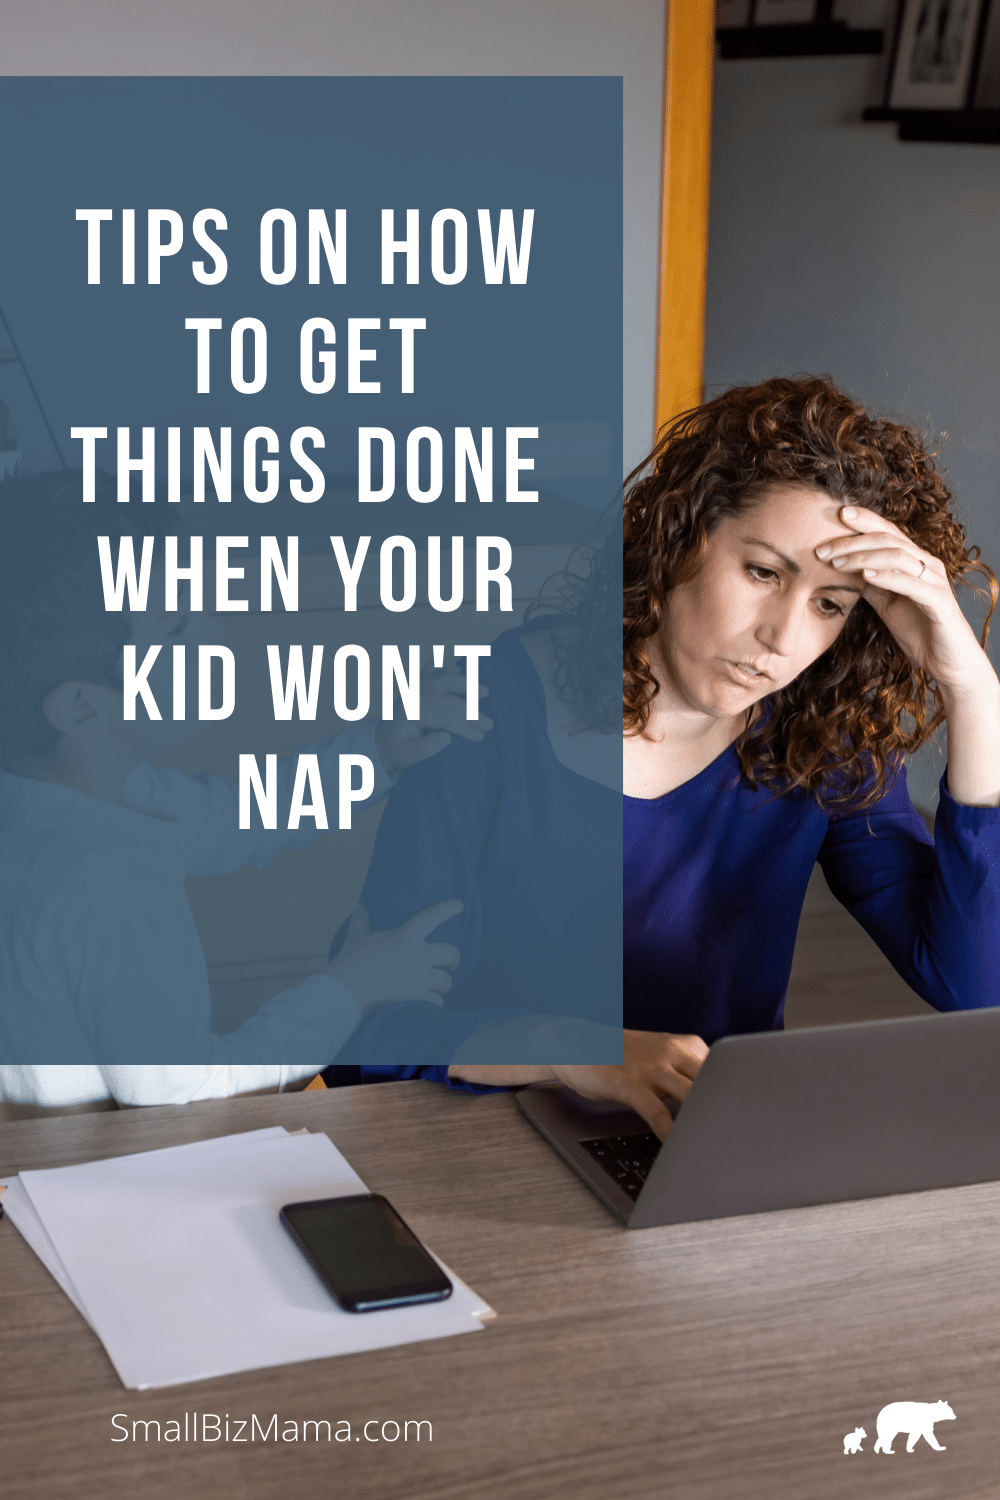 Tips on how to get things done when your kids won't nap